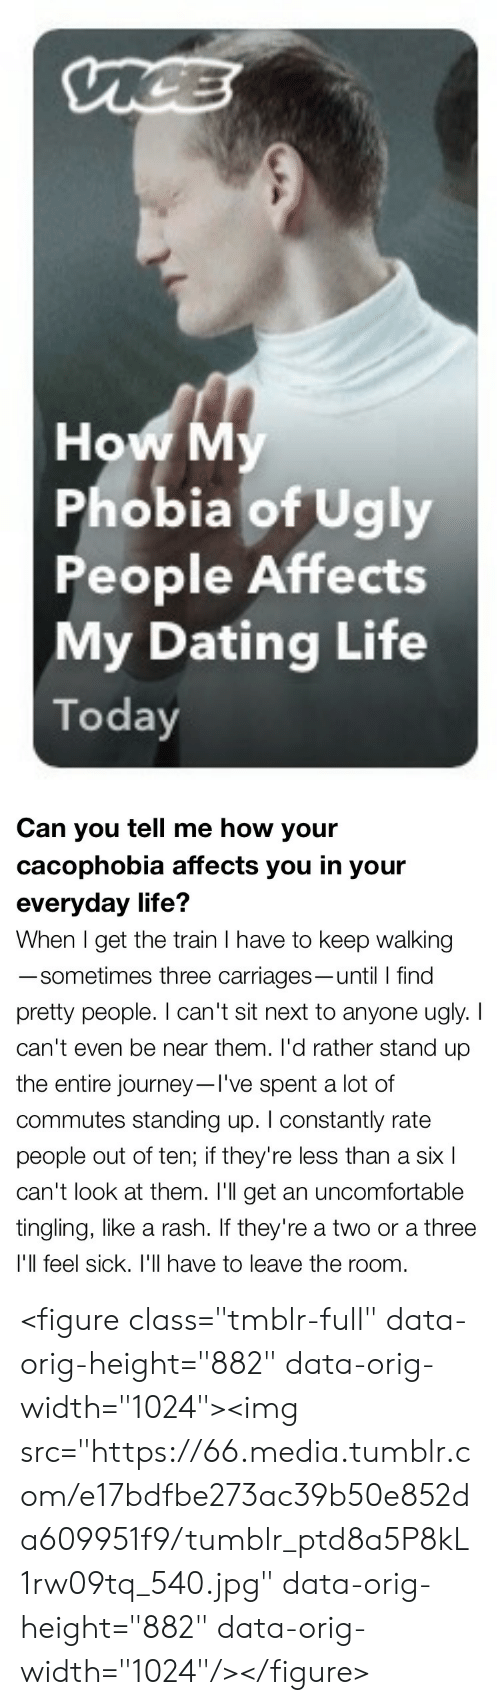 "Dating, Journey, and Life: nCE  How My  Phobia of Ugly  People Affects  My Dating Life  Today   Can you tell me how your  cacophobia affects you in your  everyday life?  When I get the train I have to keep walking  -sometimes three carriages-until I find  pretty people. I can't sit next to anyone ugly. I  can't even be near them. I'd rather stand up  the entire journey-I've spent a lot of  commutes standing up. I constantly rate  people out of ten; if they're less than a six l  can't look at them. I'll get an uncomfortable  tingling, like a rash. If they're a two or a three  I'll feel sick. I'l| have to leave the roon <figure class=""tmblr-full"" data-orig-height=""882"" data-orig-width=""1024""><img src=""https://66.media.tumblr.com/e17bdfbe273ac39b50e852da609951f9/tumblr_ptd8a5P8kL1rw09tq_540.jpg"" data-orig-height=""882"" data-orig-width=""1024""/></figure>"